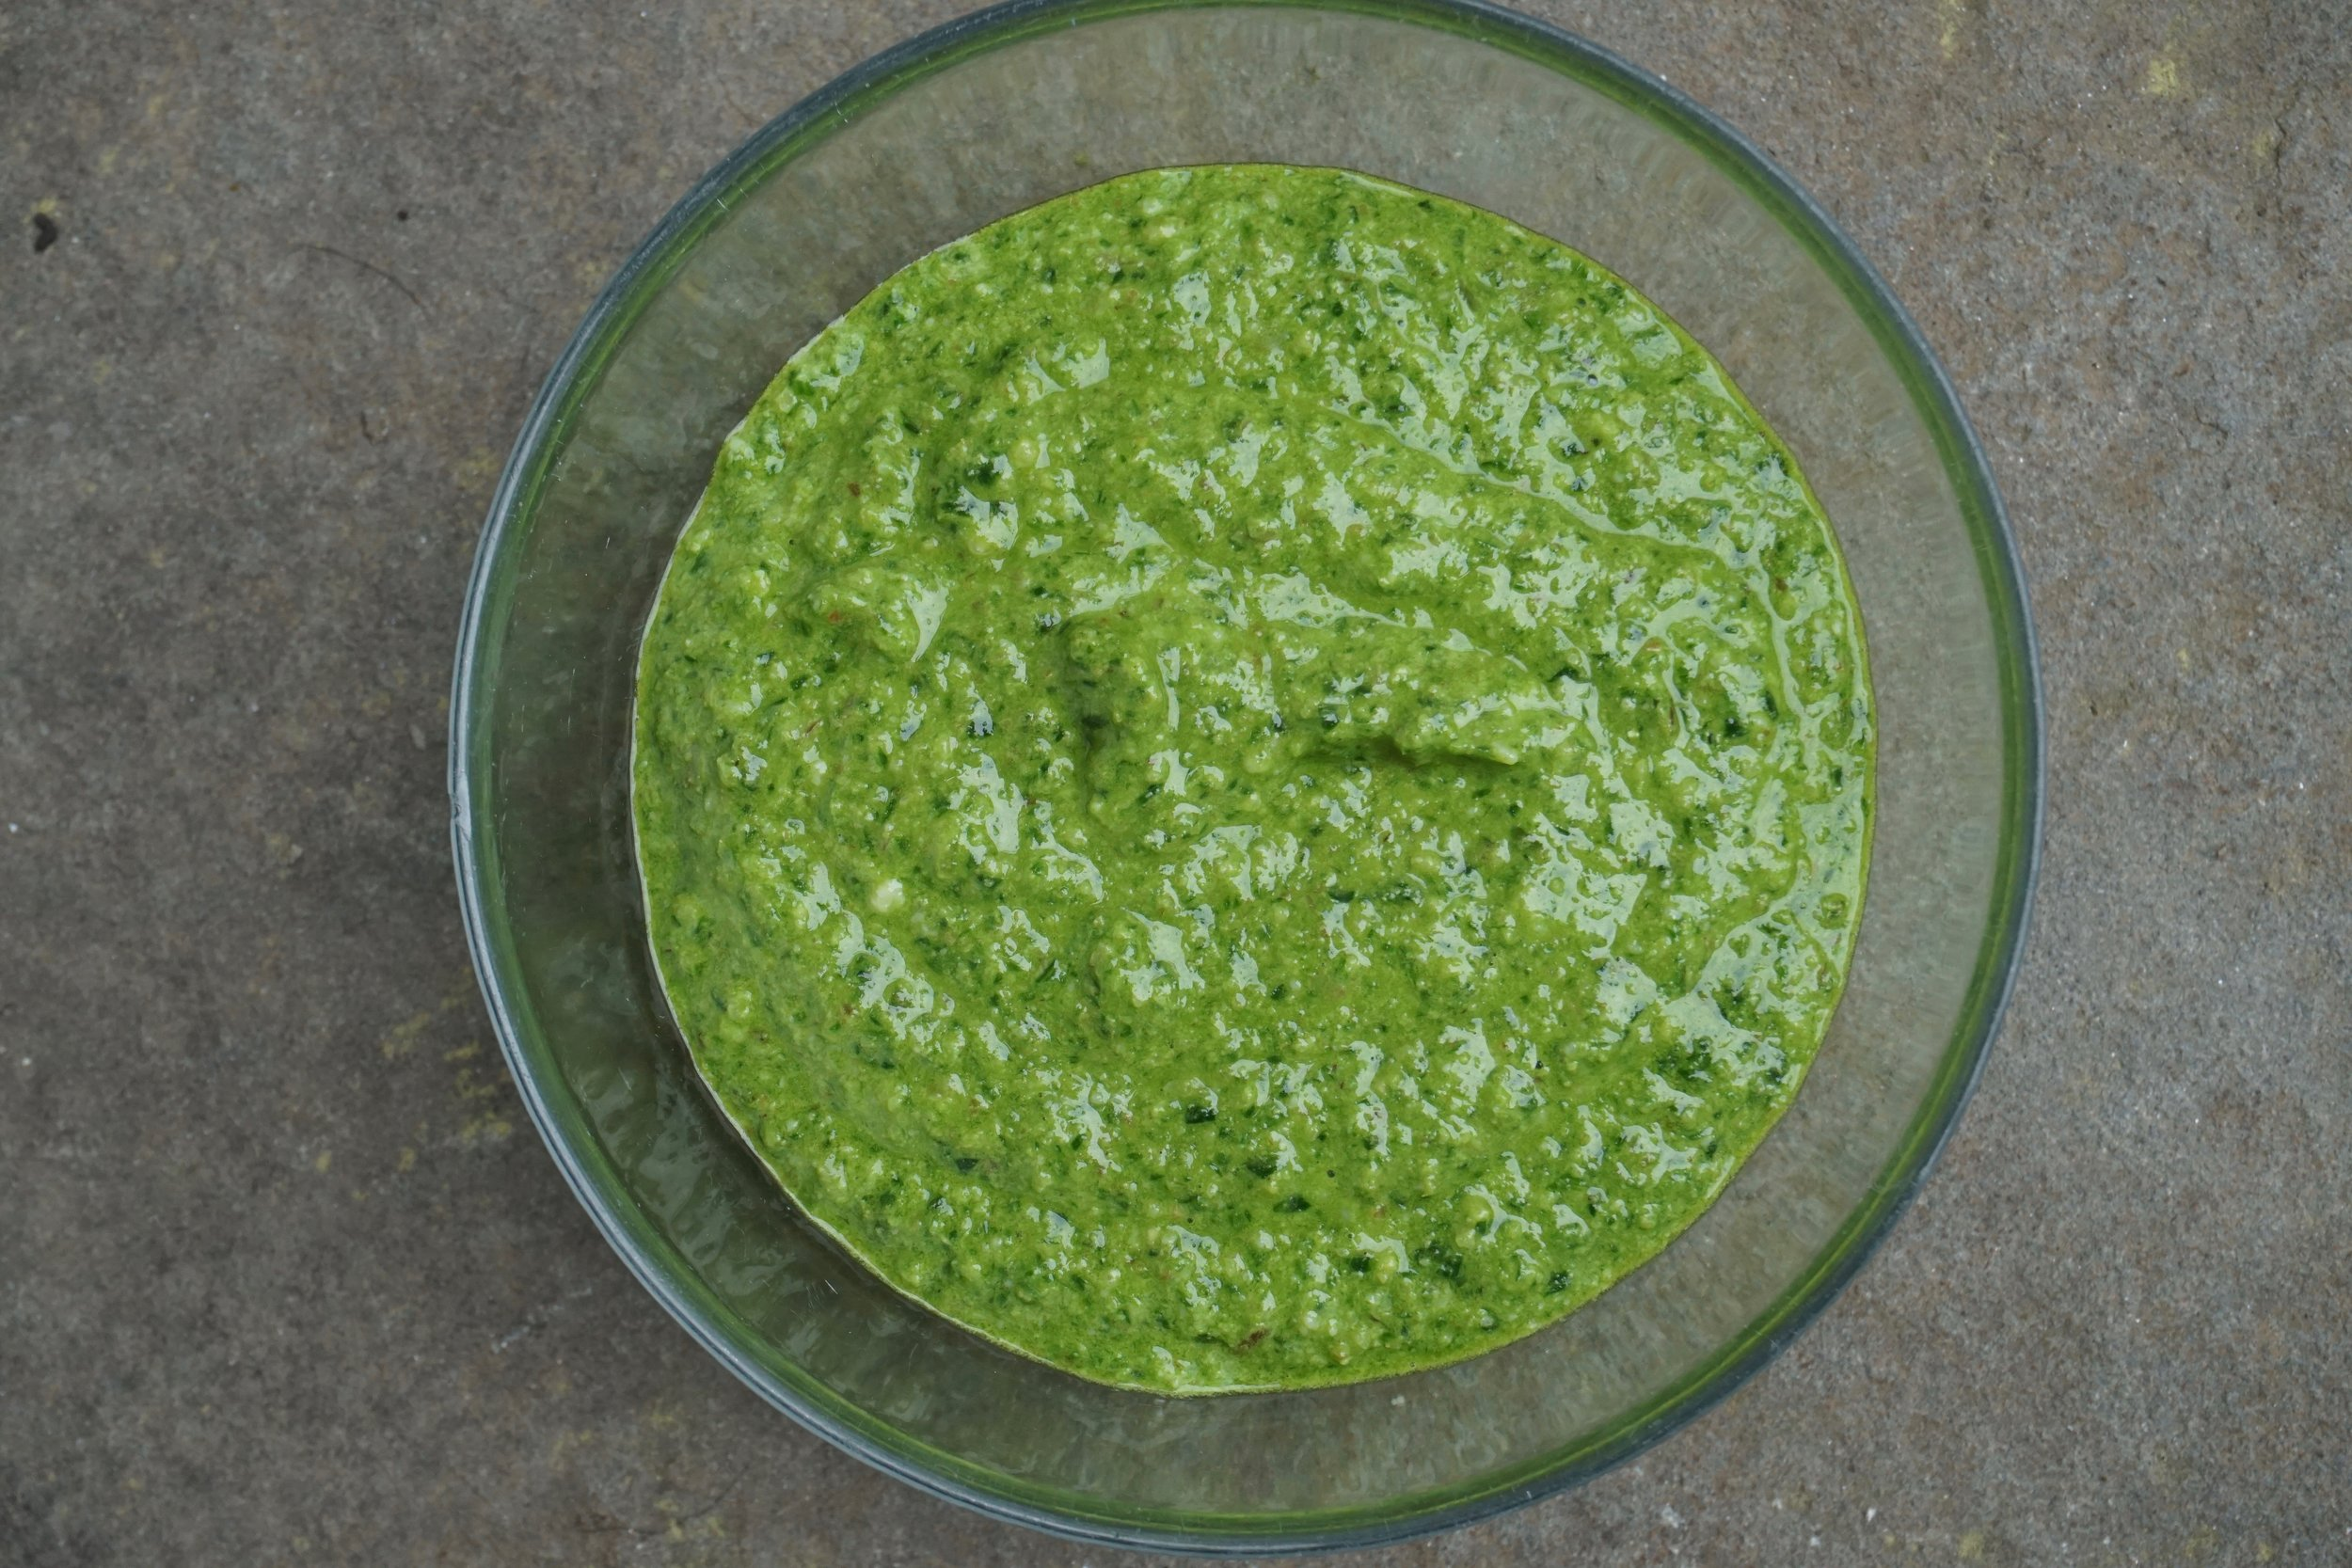 From here the pesto goes into freezer bags. Get as much air out as possible ...I roll them then seal. I use this pesto on fish, chicken, spooned into soups and of course risotto and pasta.